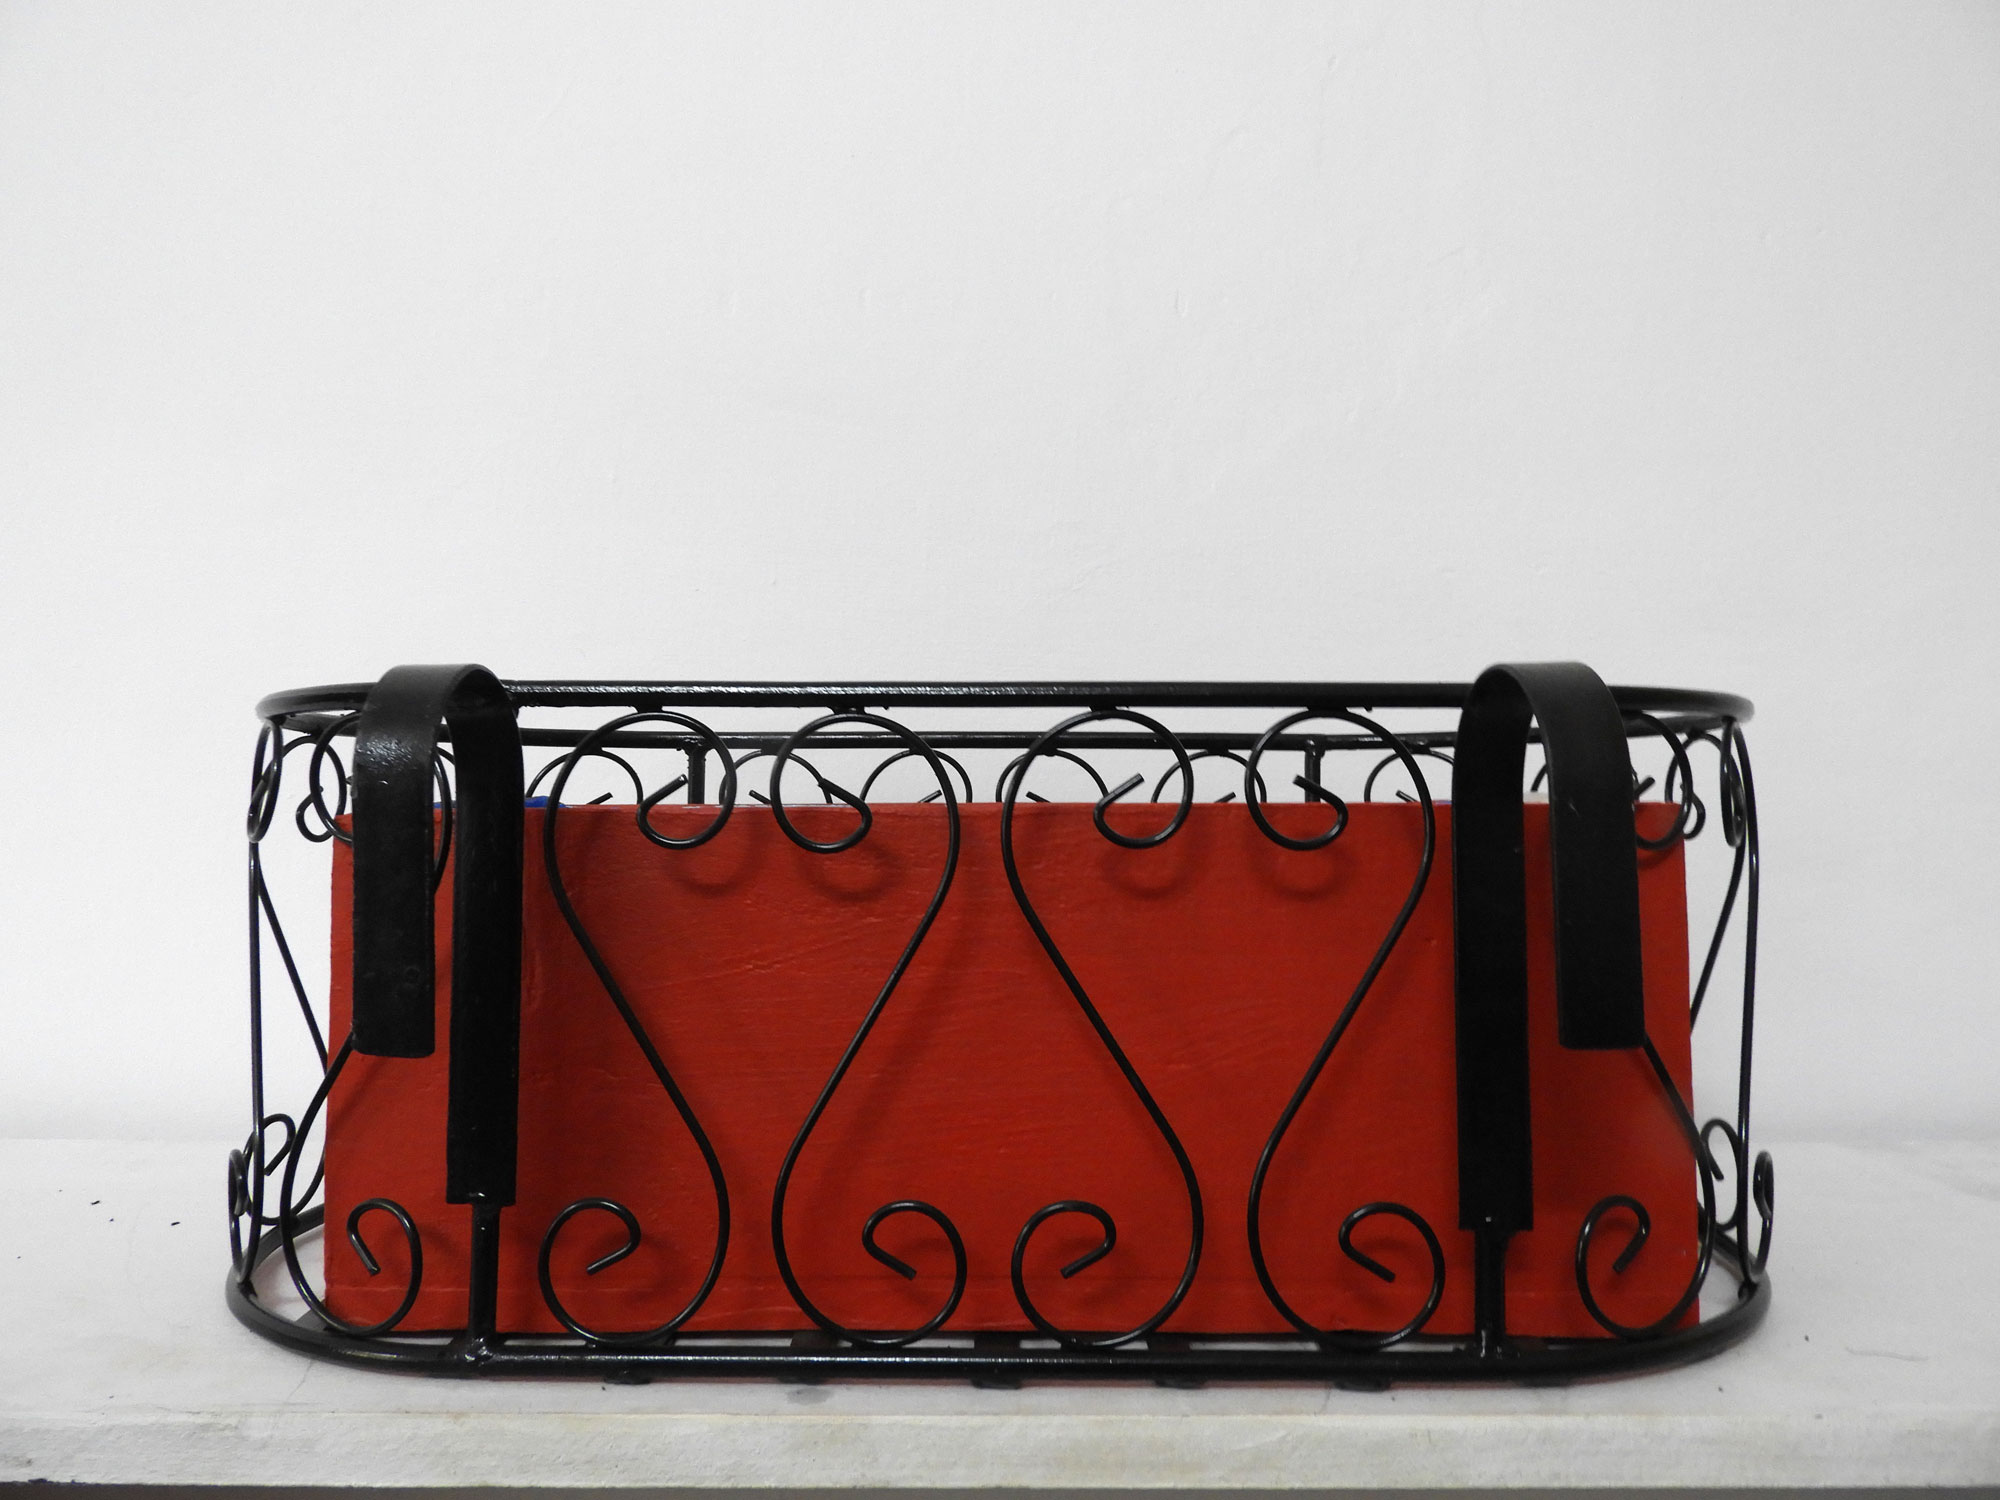 Wrought Iron Railing Planter Small 'S' Pattern with Rectangular Filler Wood Planter